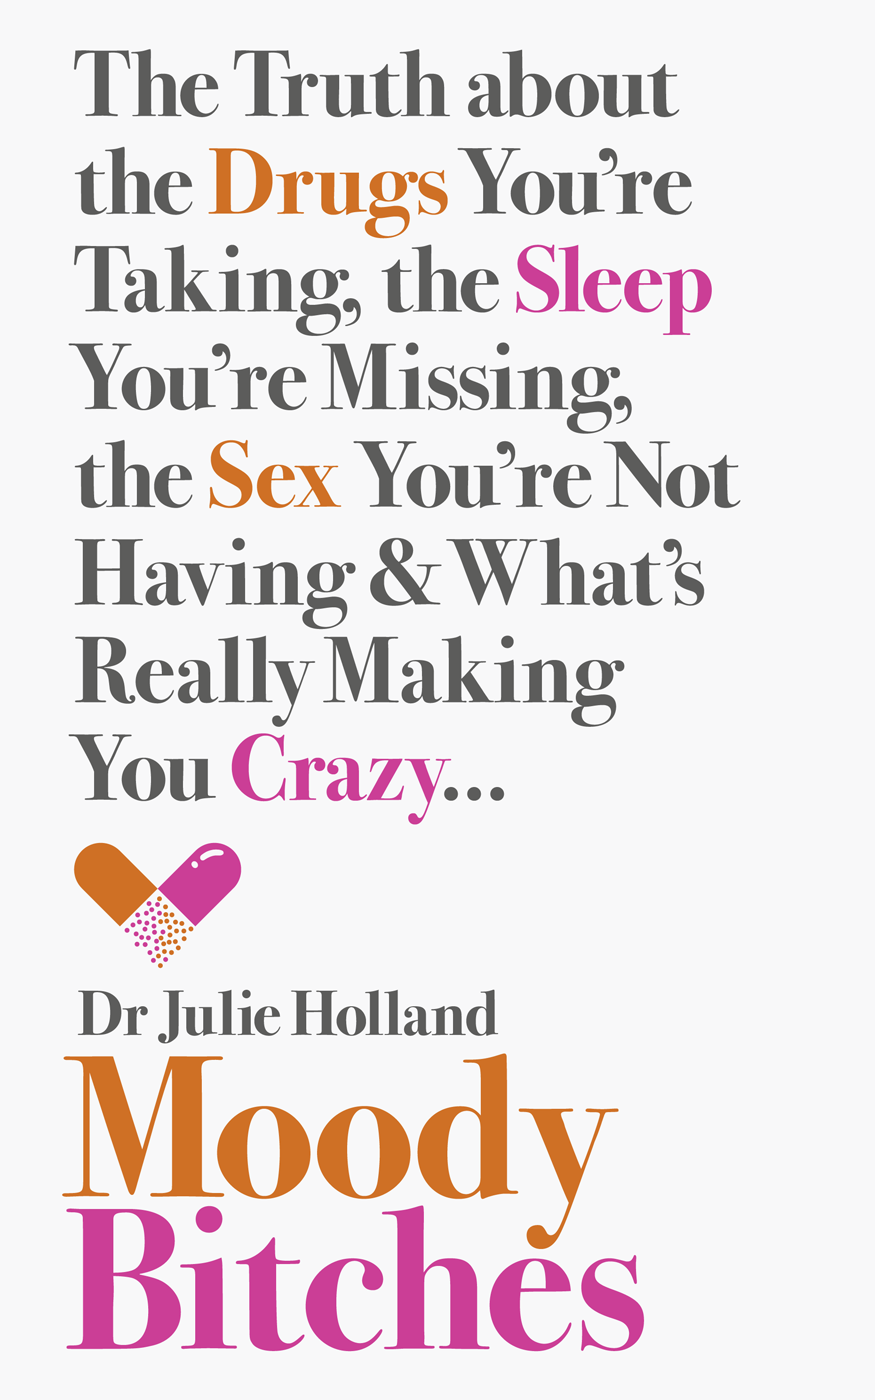 Фото - Julie Holland Moody Bitches: The Truth about the Drugs You're Taking, the Sleep You're Missing, the Sex You're Not Having and What's Really Making You Crazy... frazzled